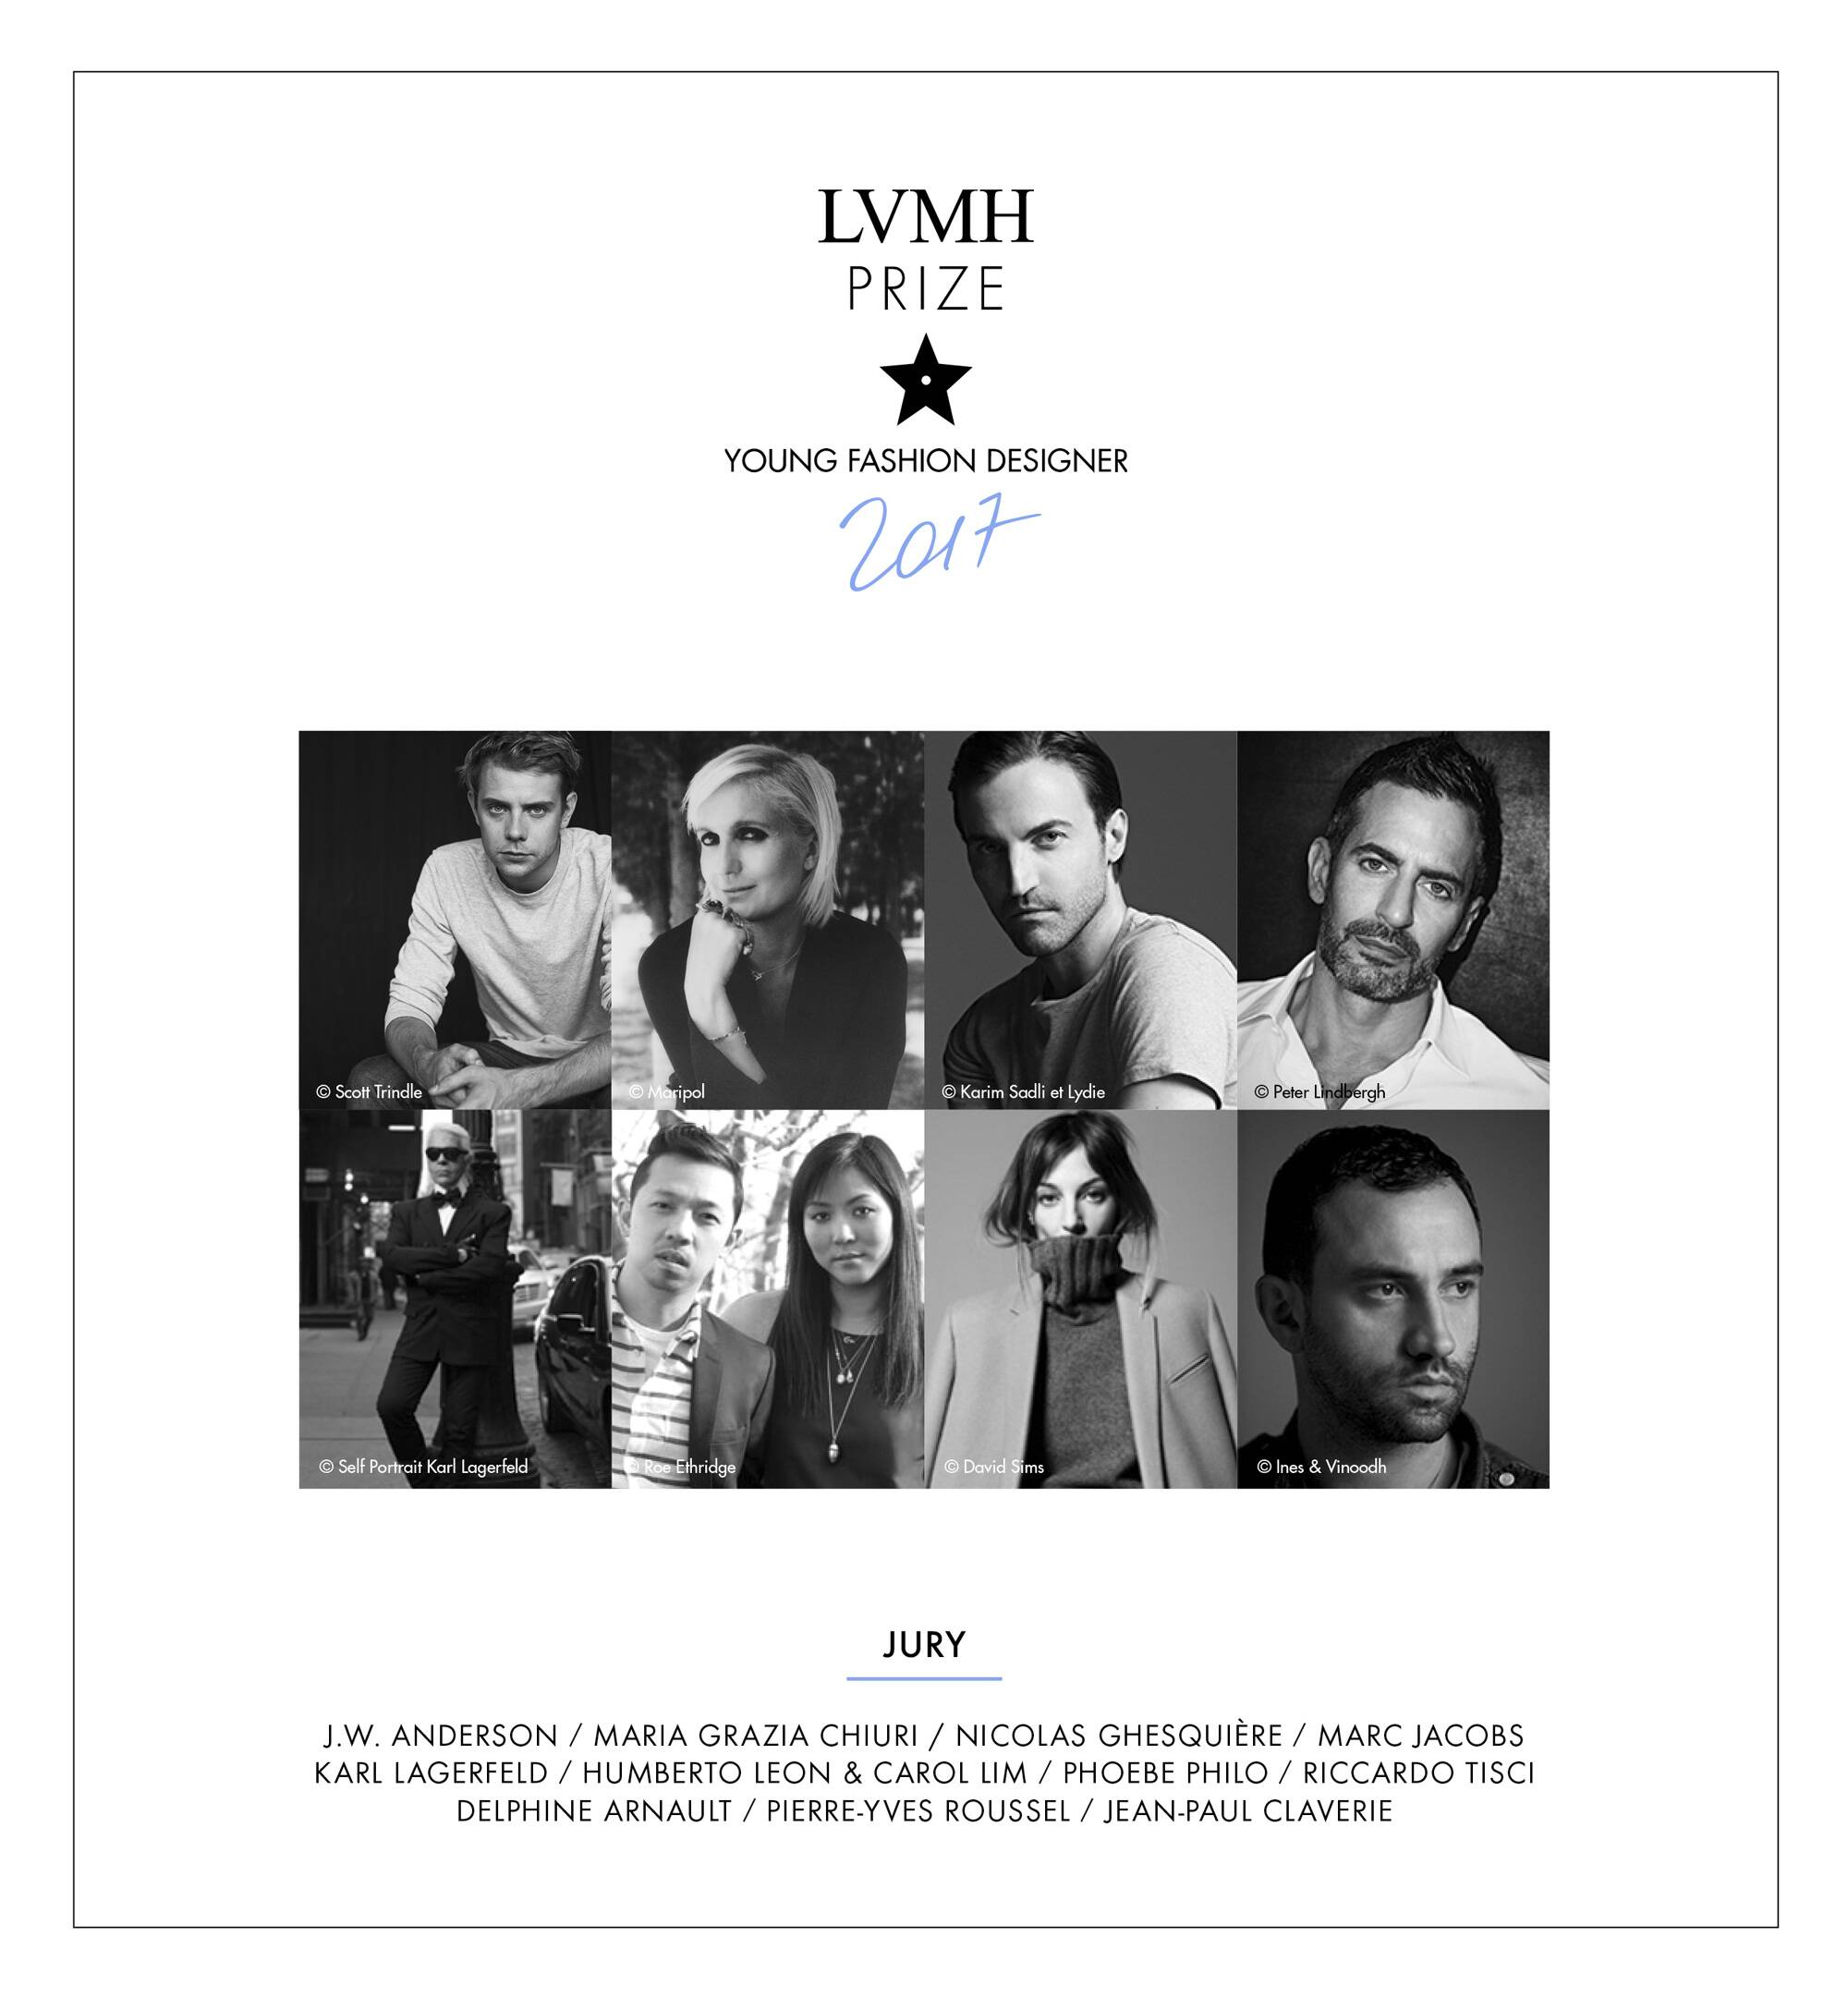 Young Fashion Designer Prix Lvmh